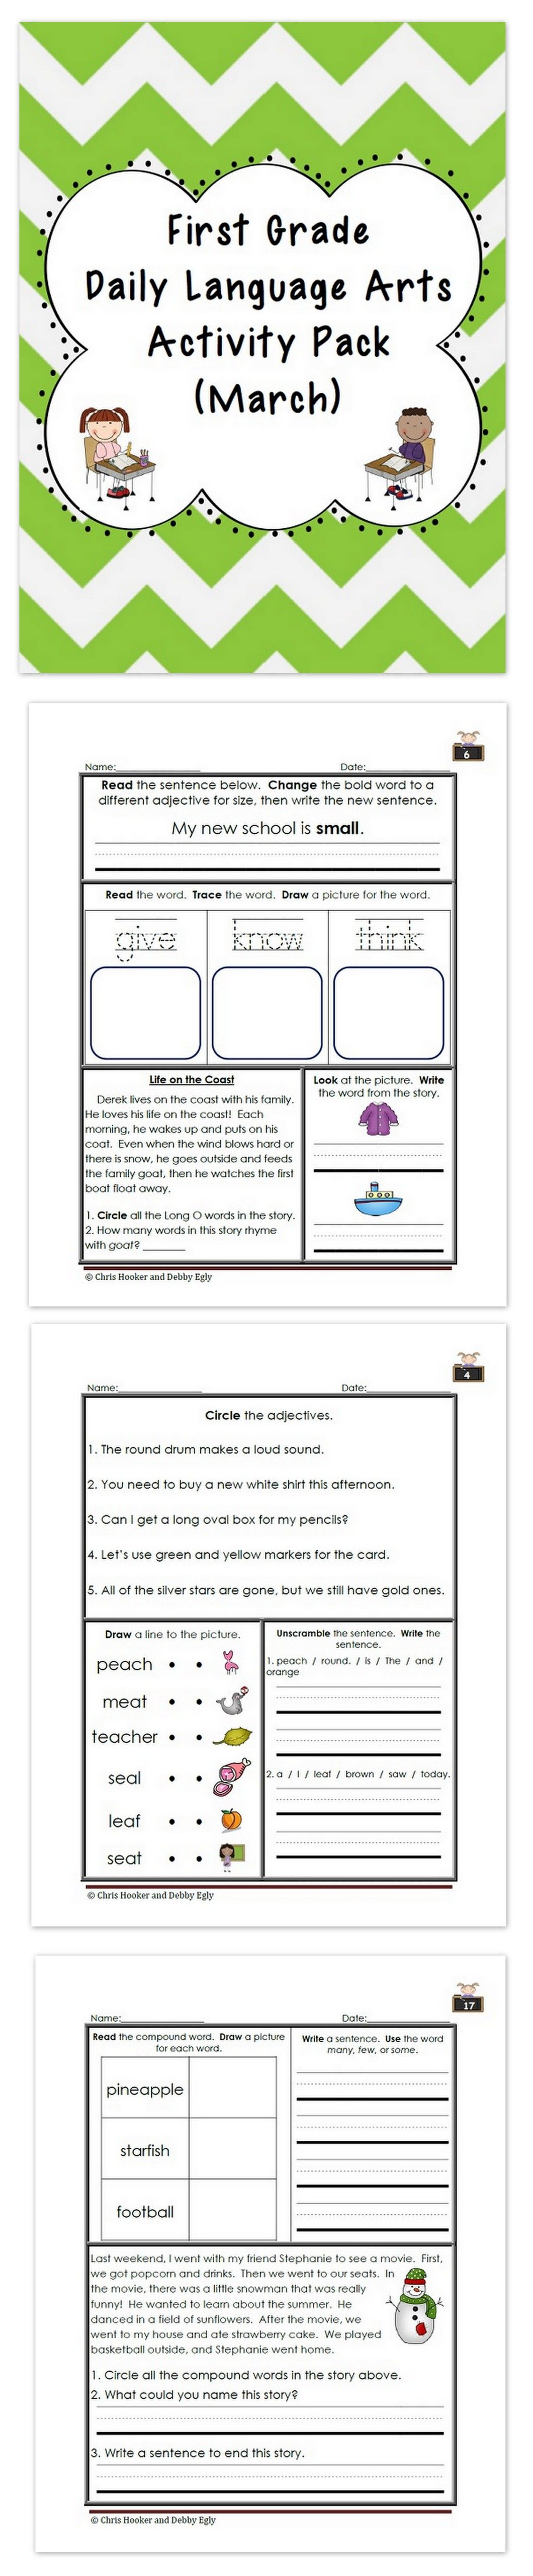 worksheet Daily Language Worksheets 1st grade language arts worksheet pack march common core aligned aligned